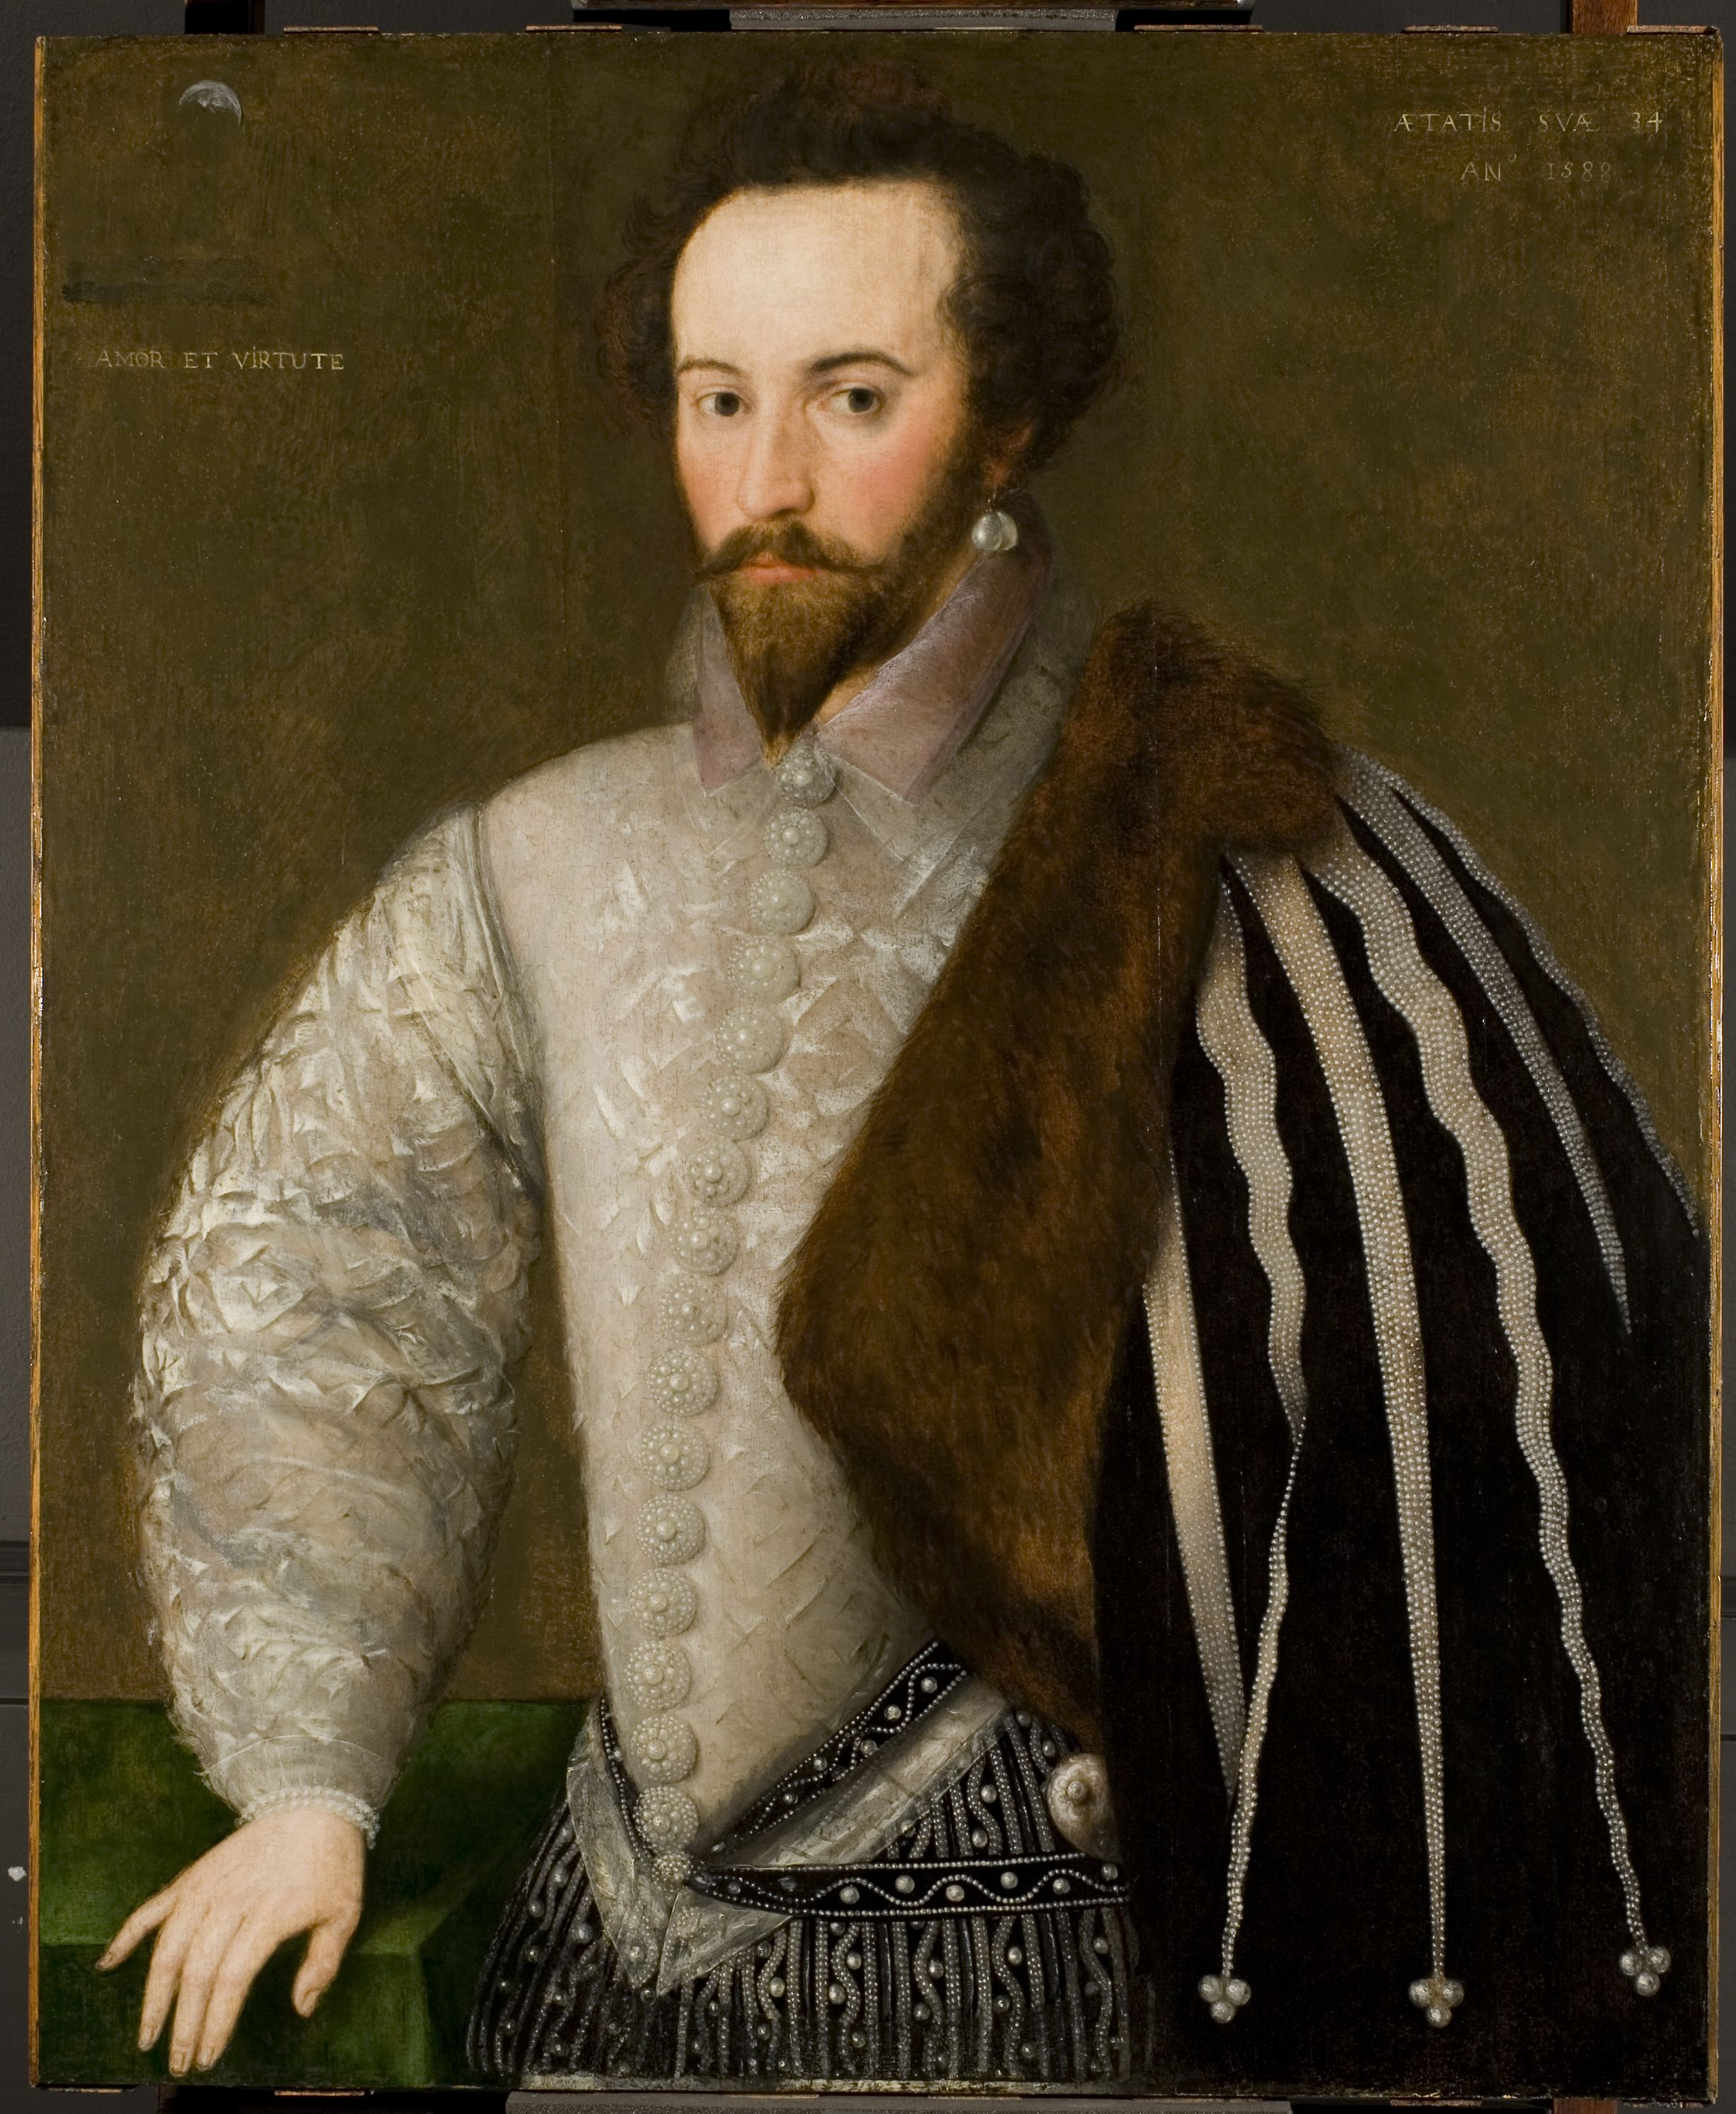 A Portrait Of Sir Walter Raleigh, Explorer, Soldier, Poet And Favored  Courtier Of Queen Elizabeth I, In The National Portrait Gallery Has An  Allegorical ...